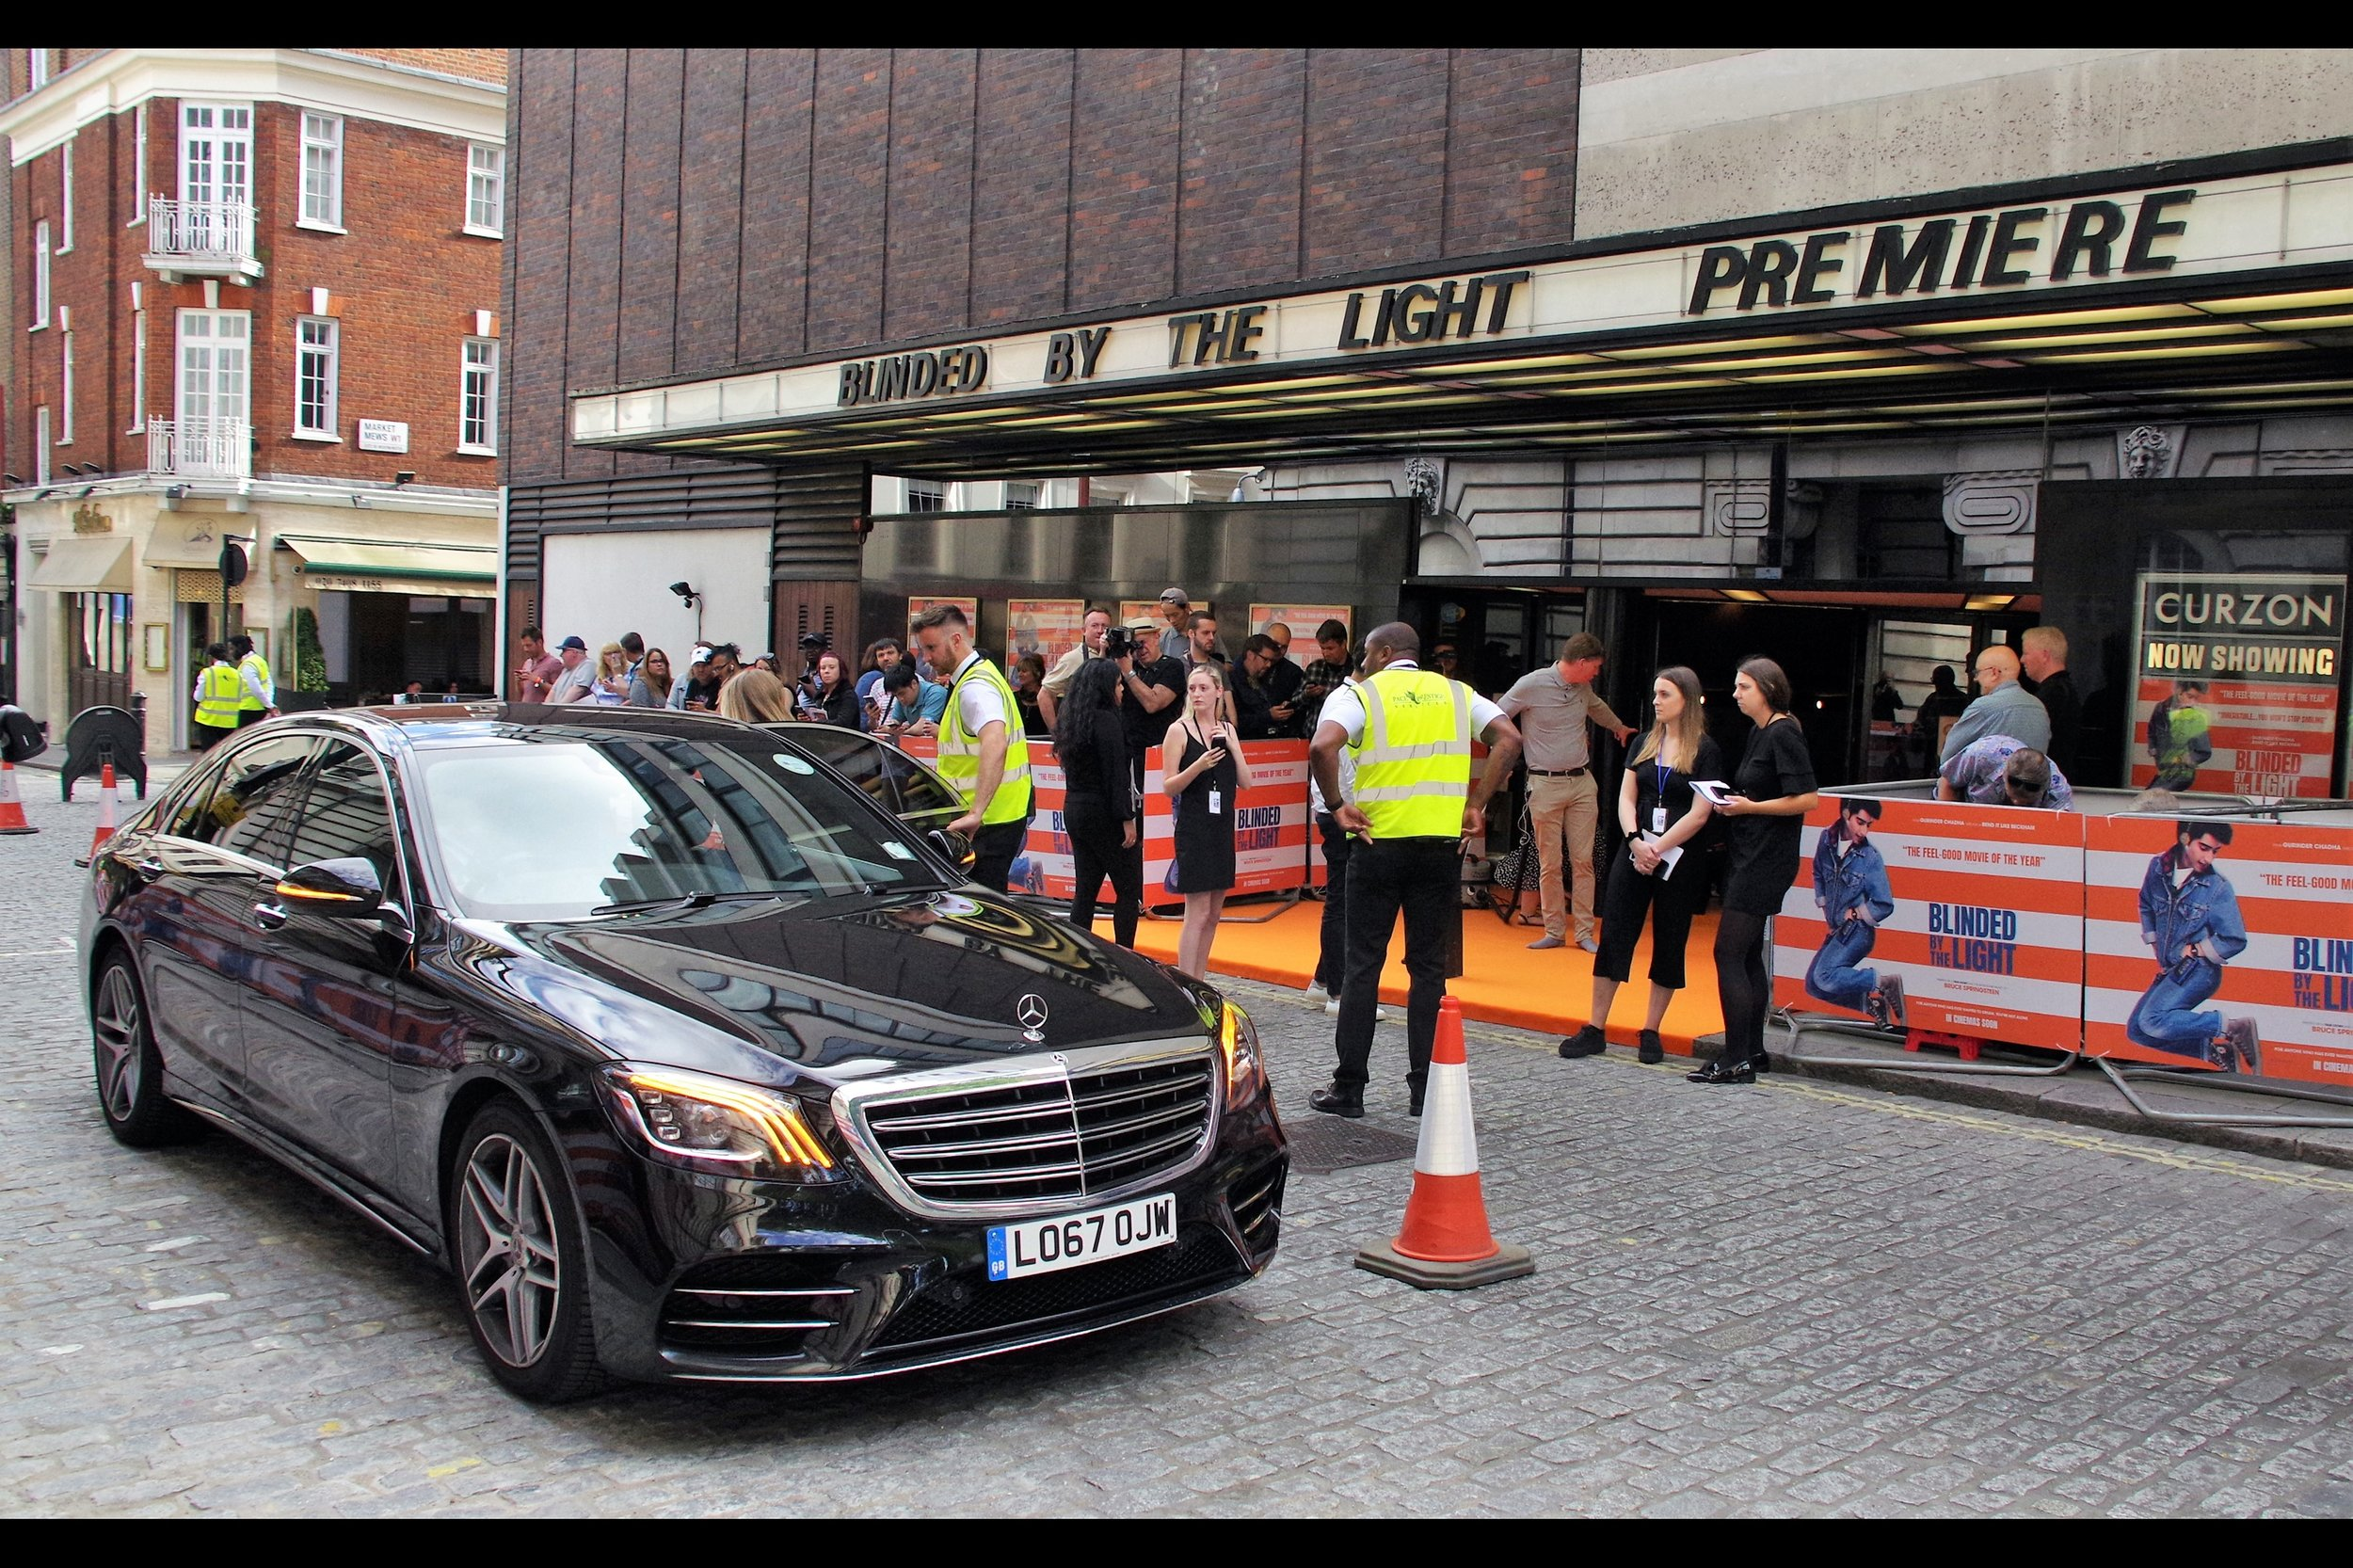 One very exciting (?) element of Curzon Mayfair premieres is that when they fail to shut down the road, you have the opportunity (?) of shooting through and around cars, vans, taxis and even the odd truck. But only once the premiere starts… before that it's usually easy enough.